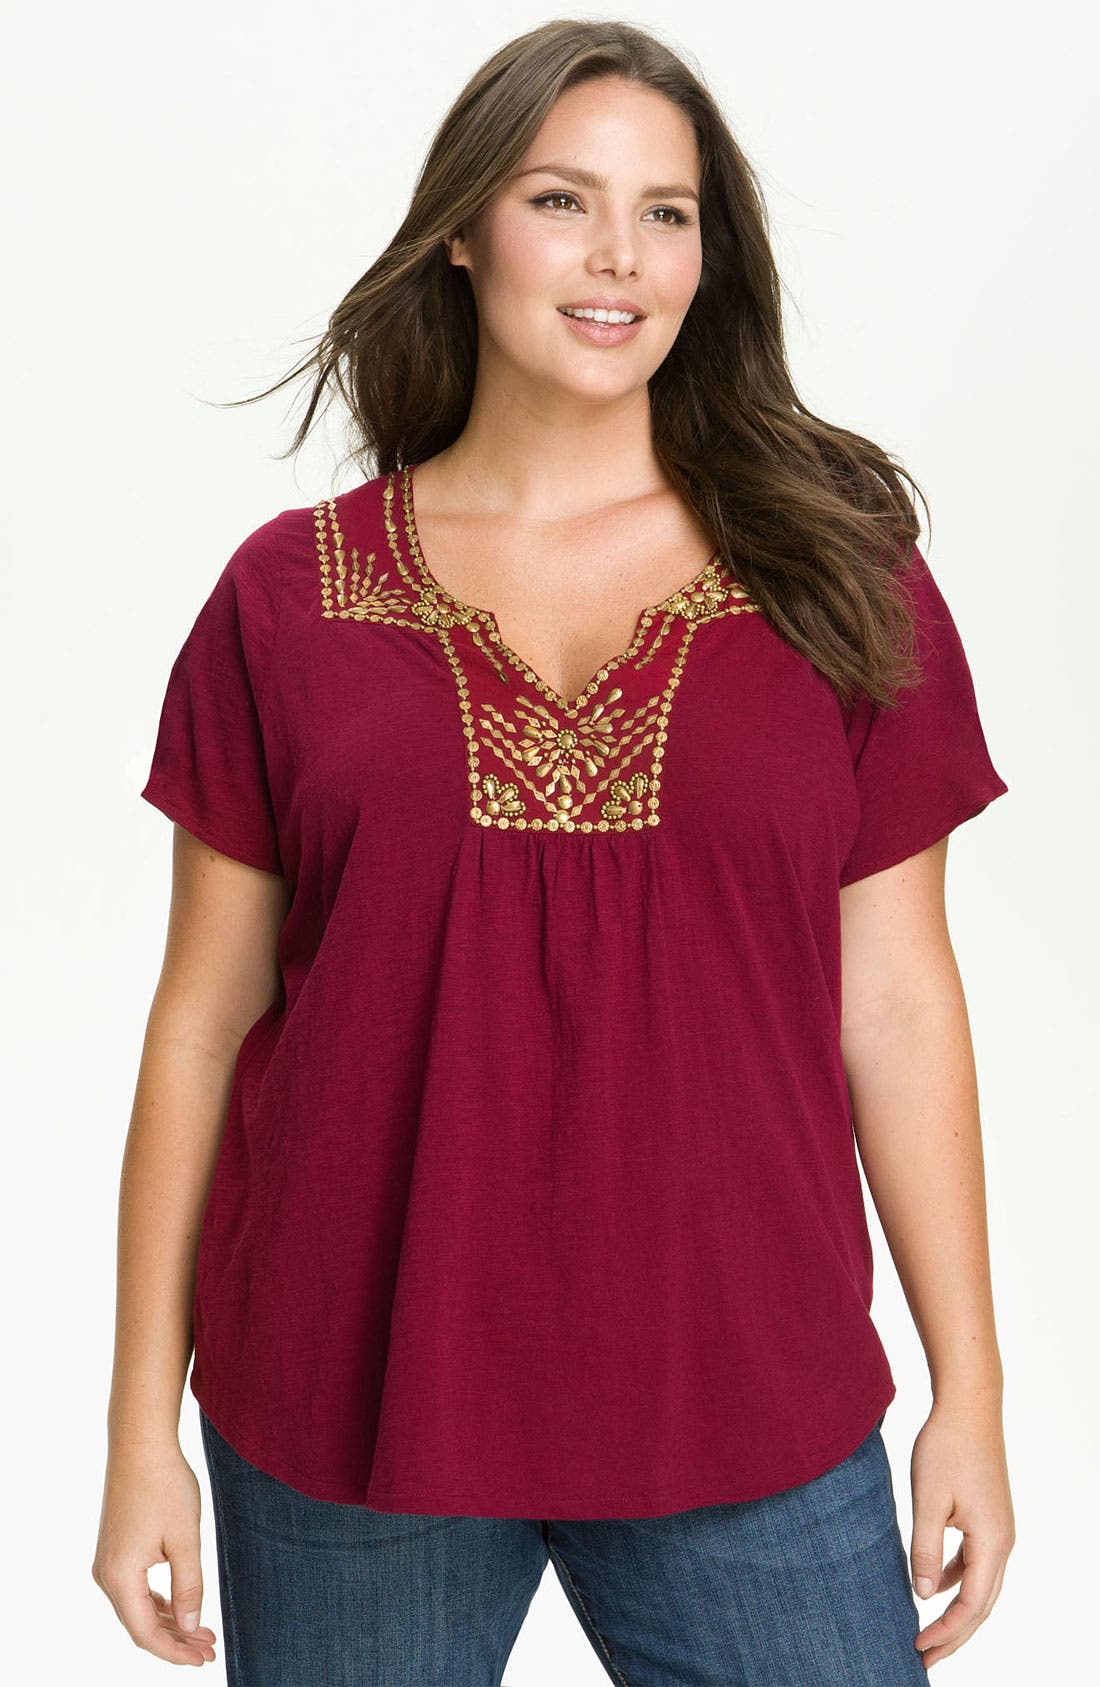 Alternate Image 1 Selected - Lucky Brand 'Veronica' Top (Plus)